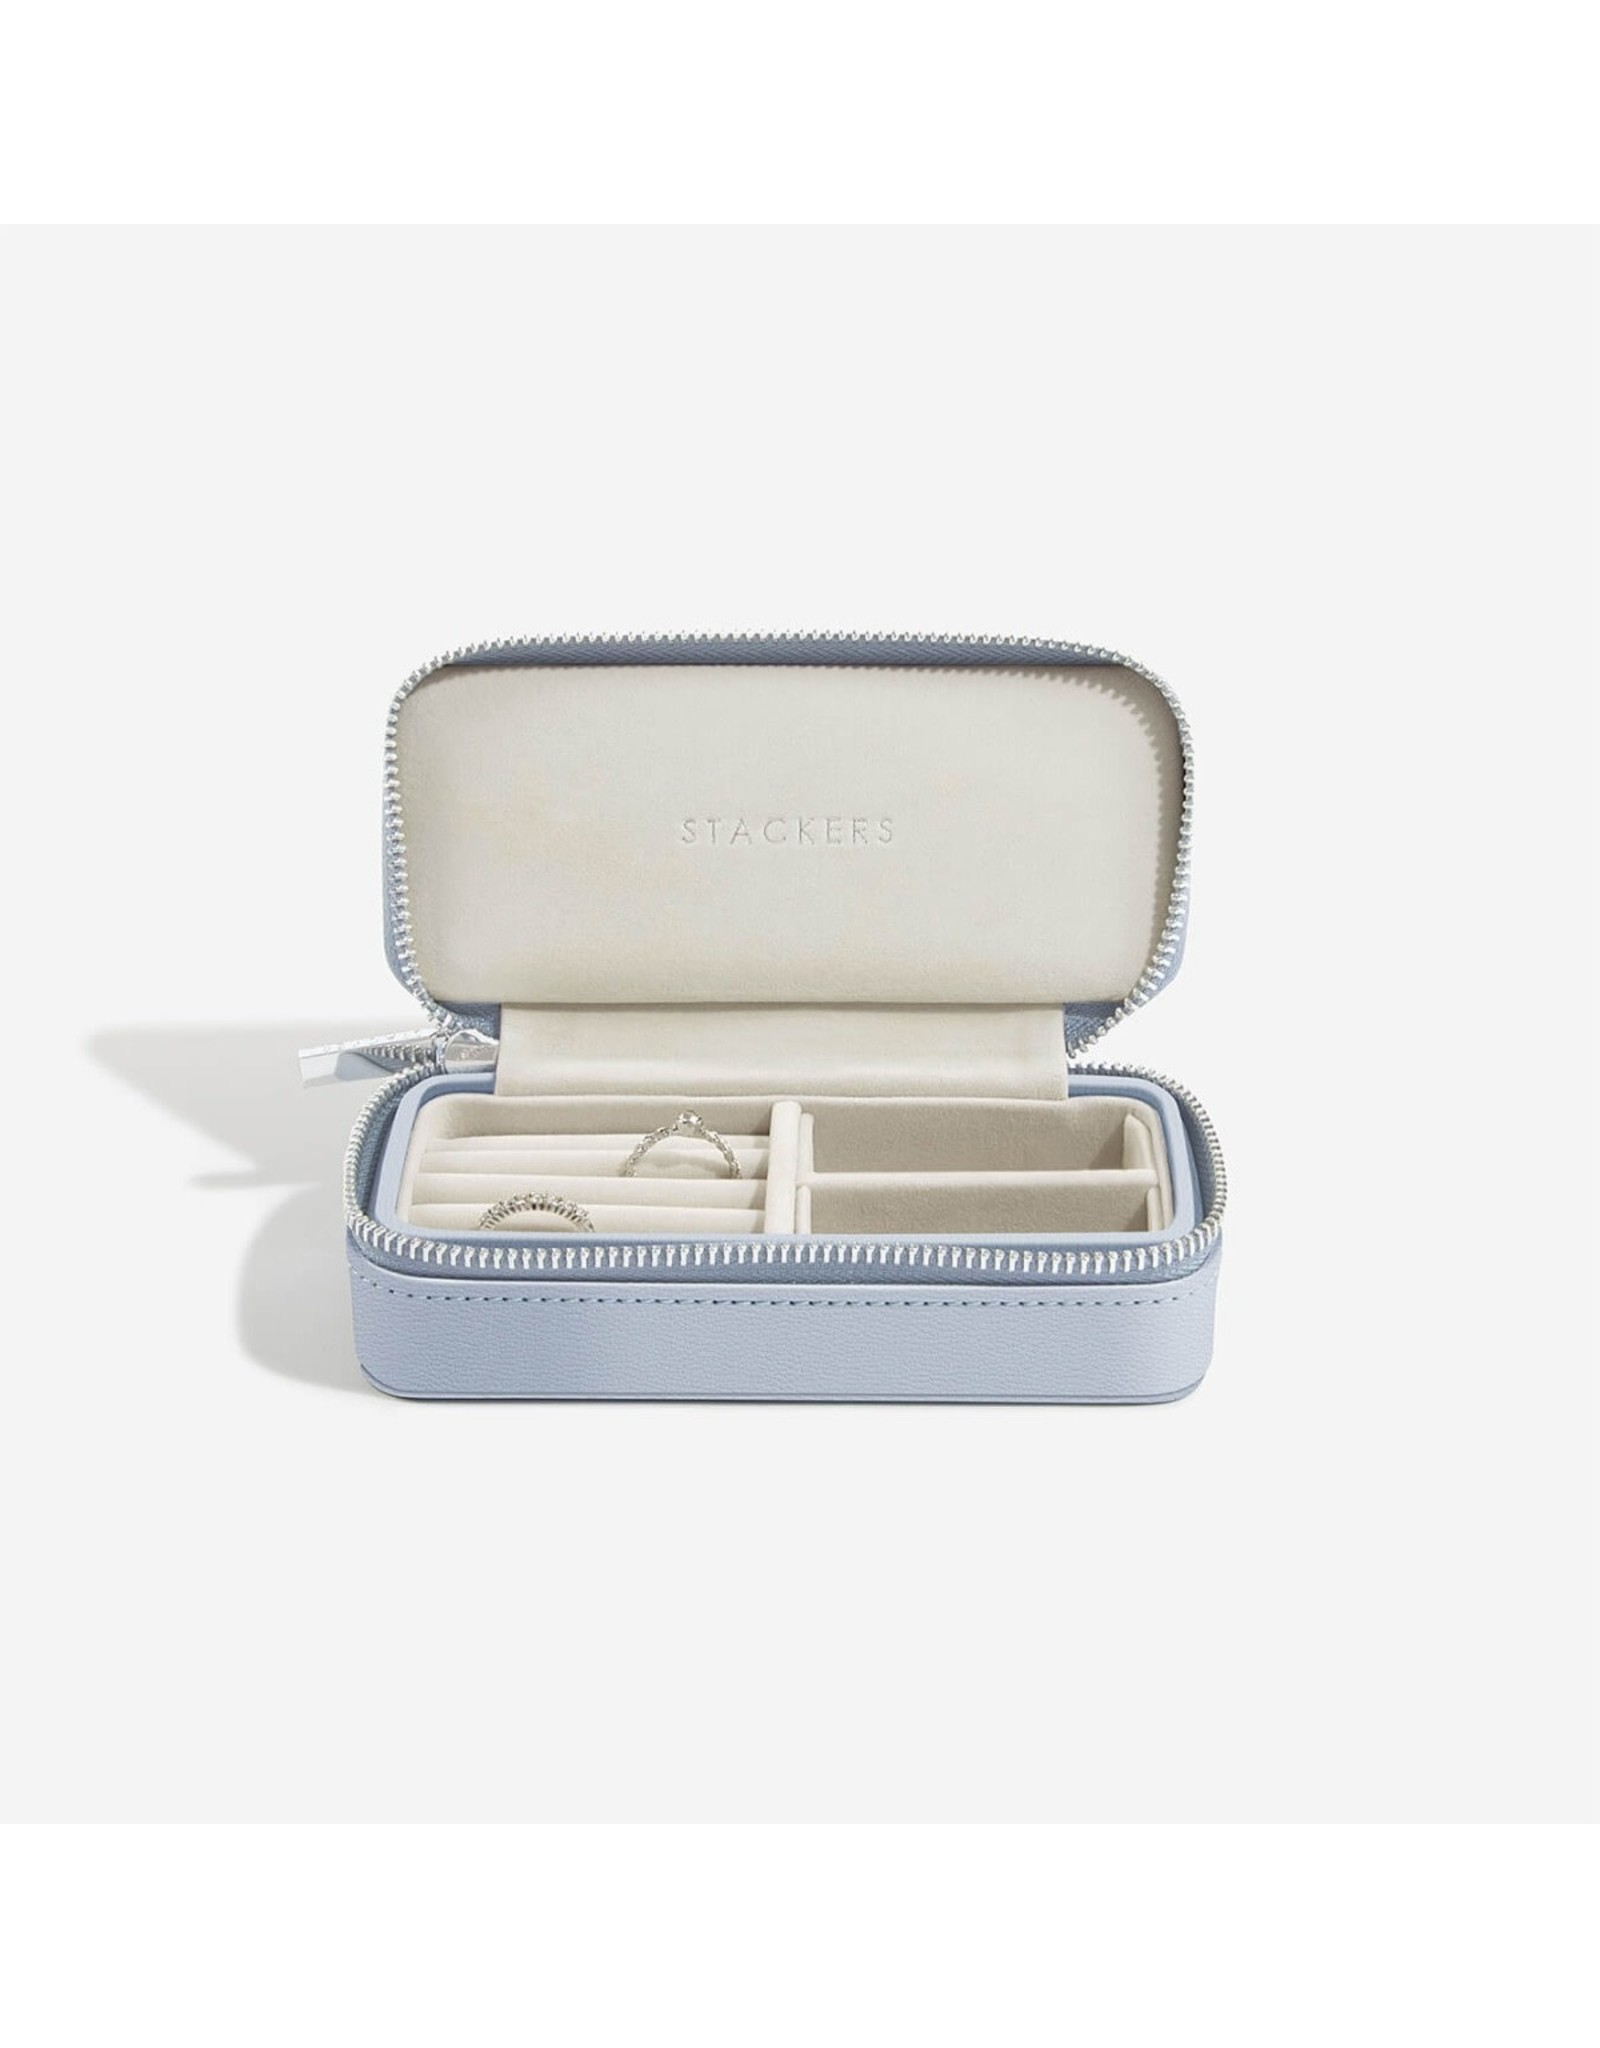 Stackers Lavender - Travelbox - Mid-size